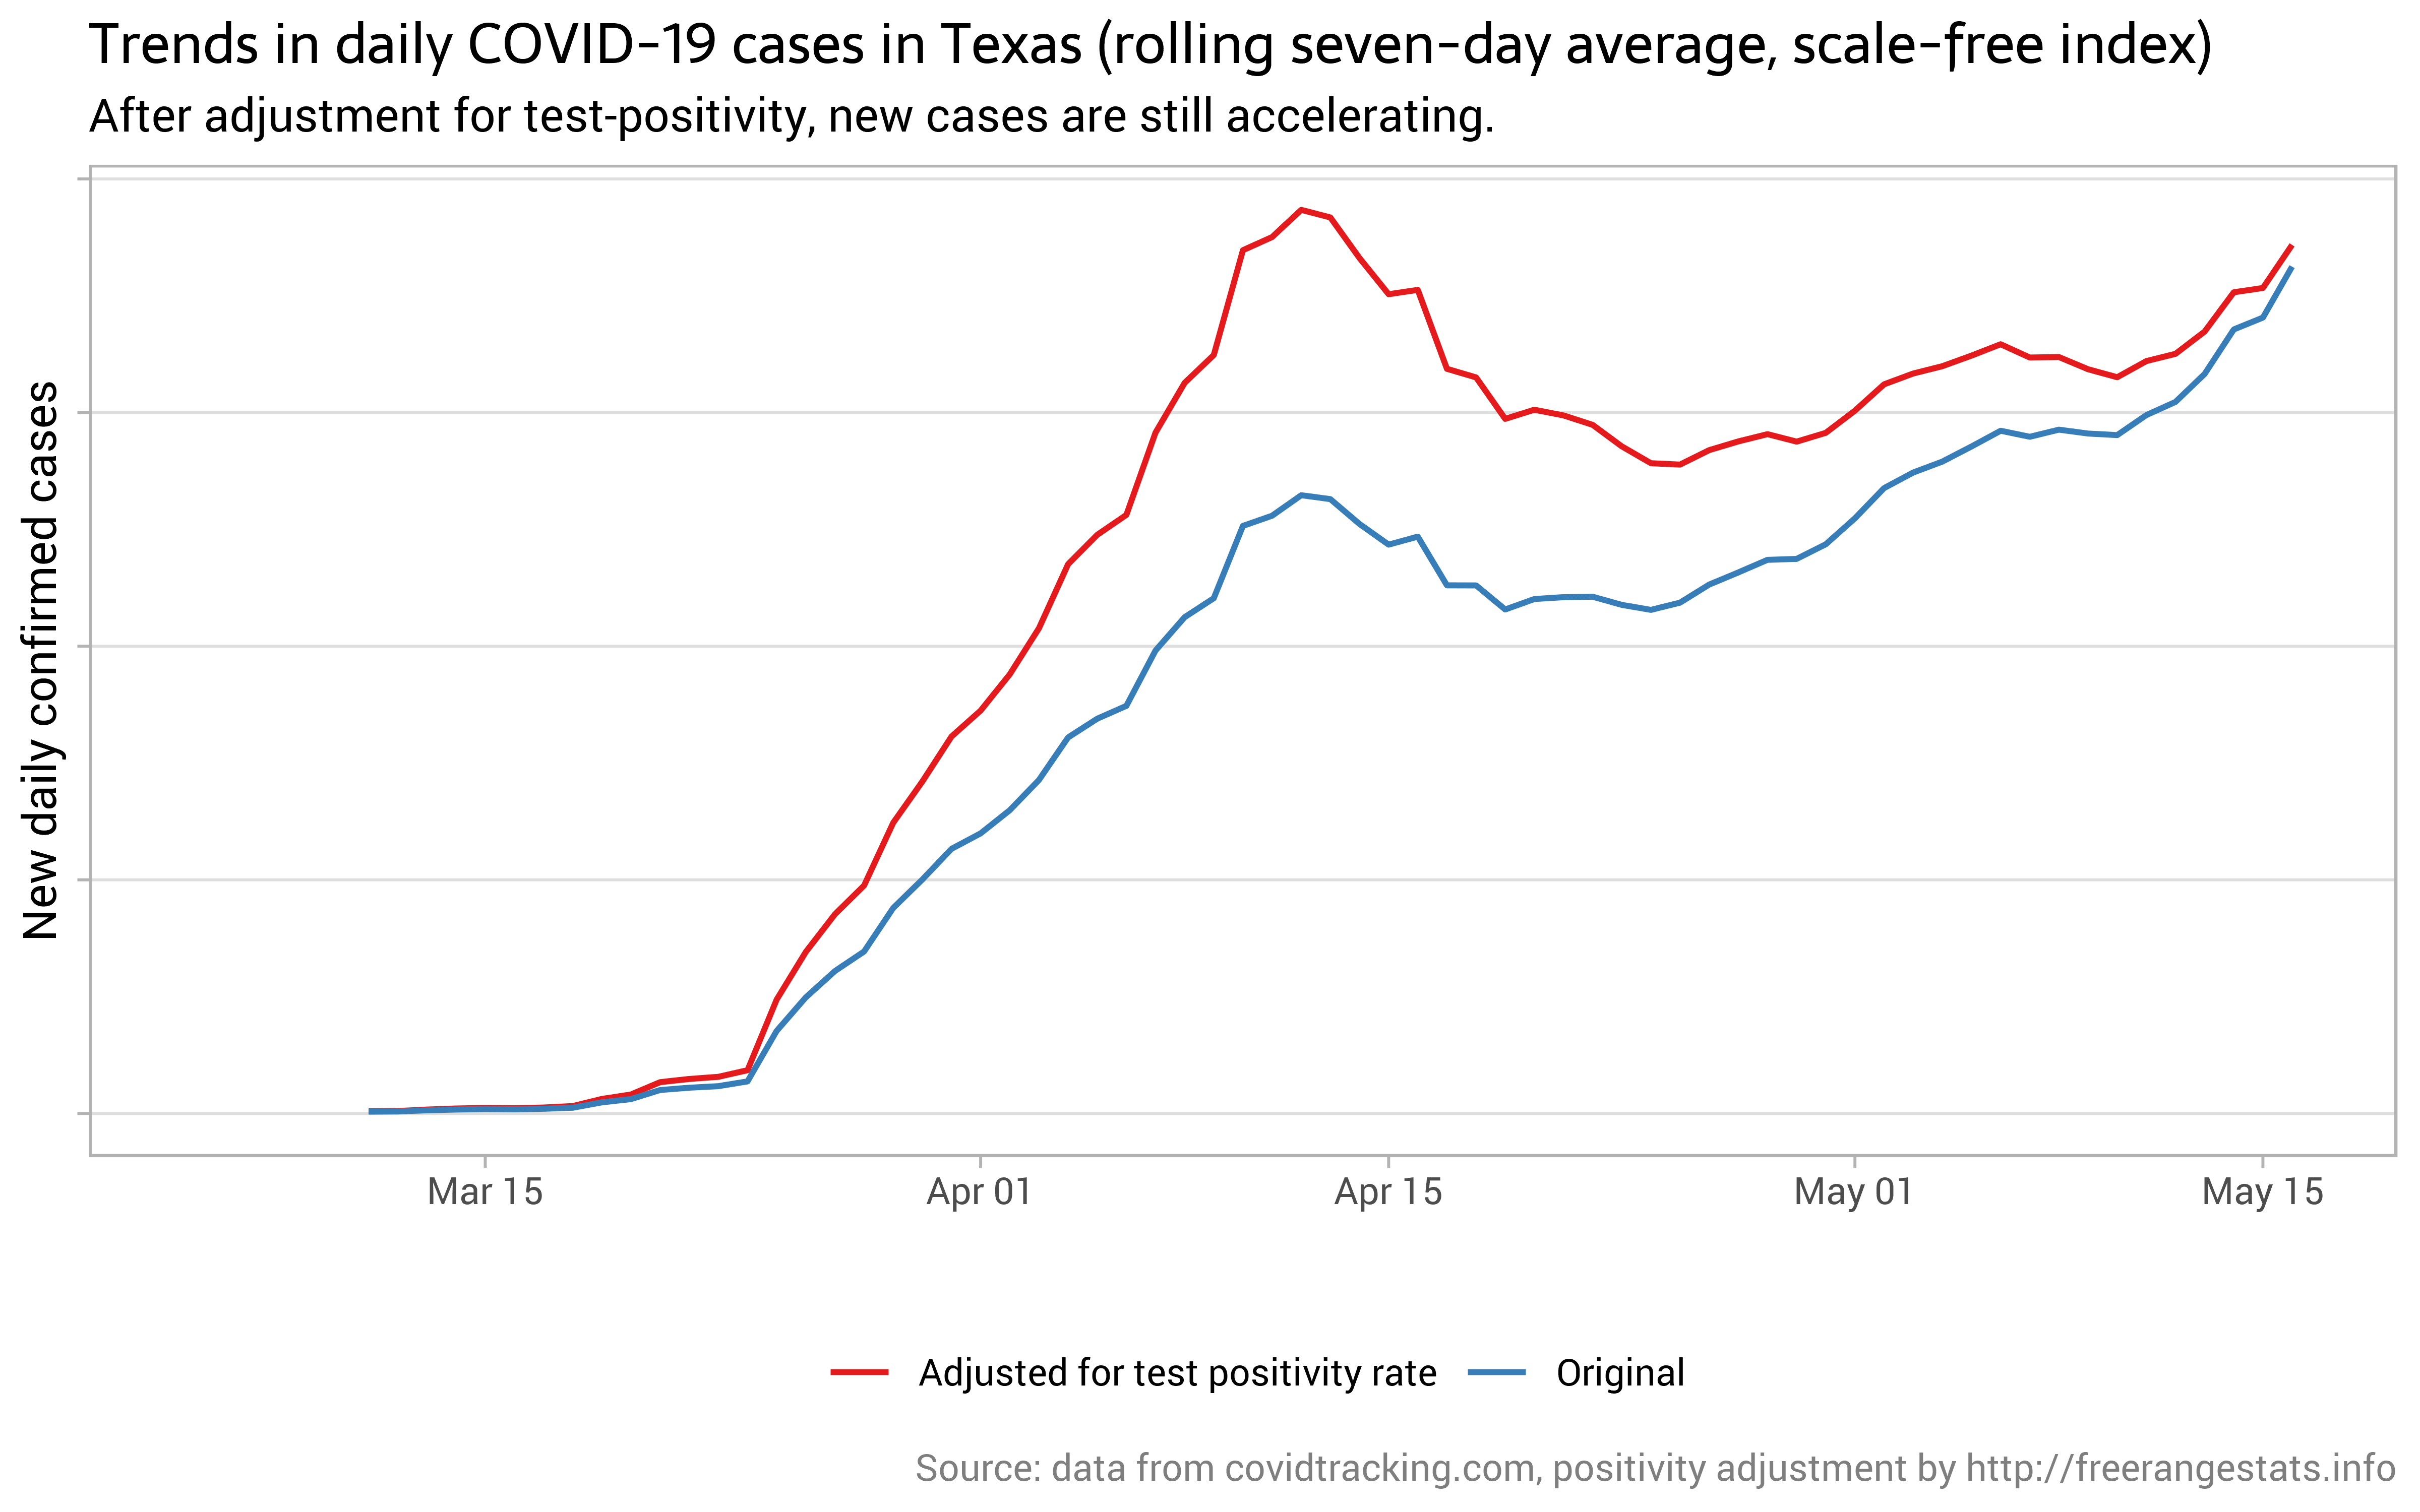 Incidence of COVID-19 in Texas after adjusting for test positivity by @ellis2013nz